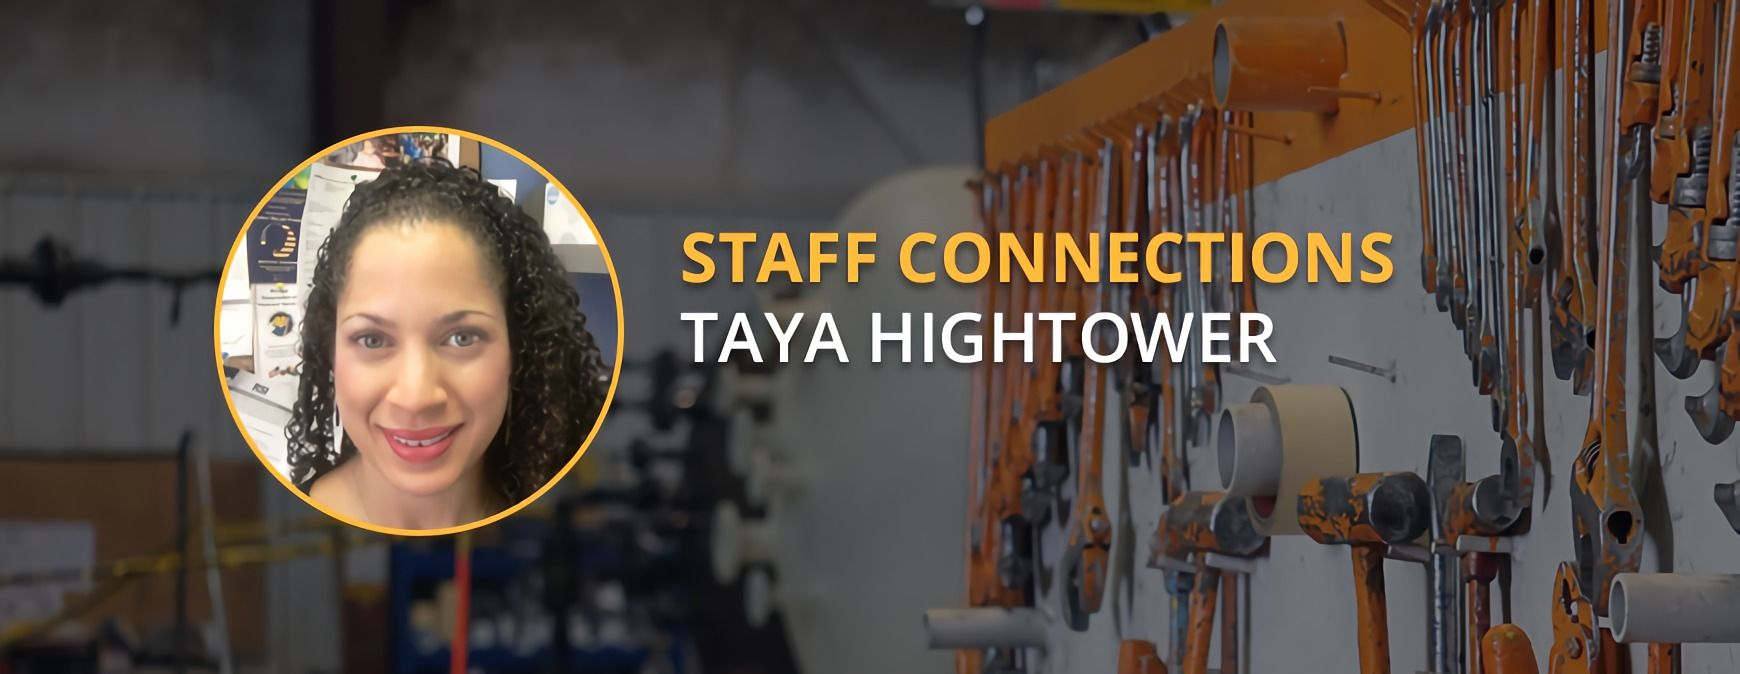 taya hightower staff connections